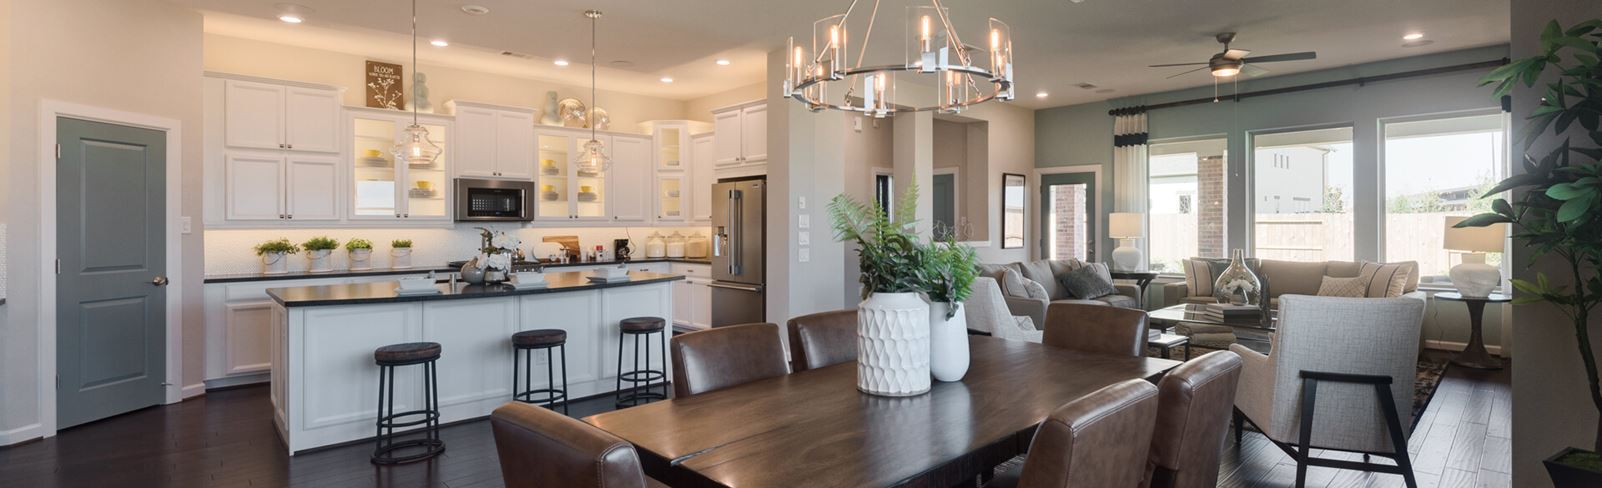 Homebuilders in Elyson Master-planned community Katy, TX